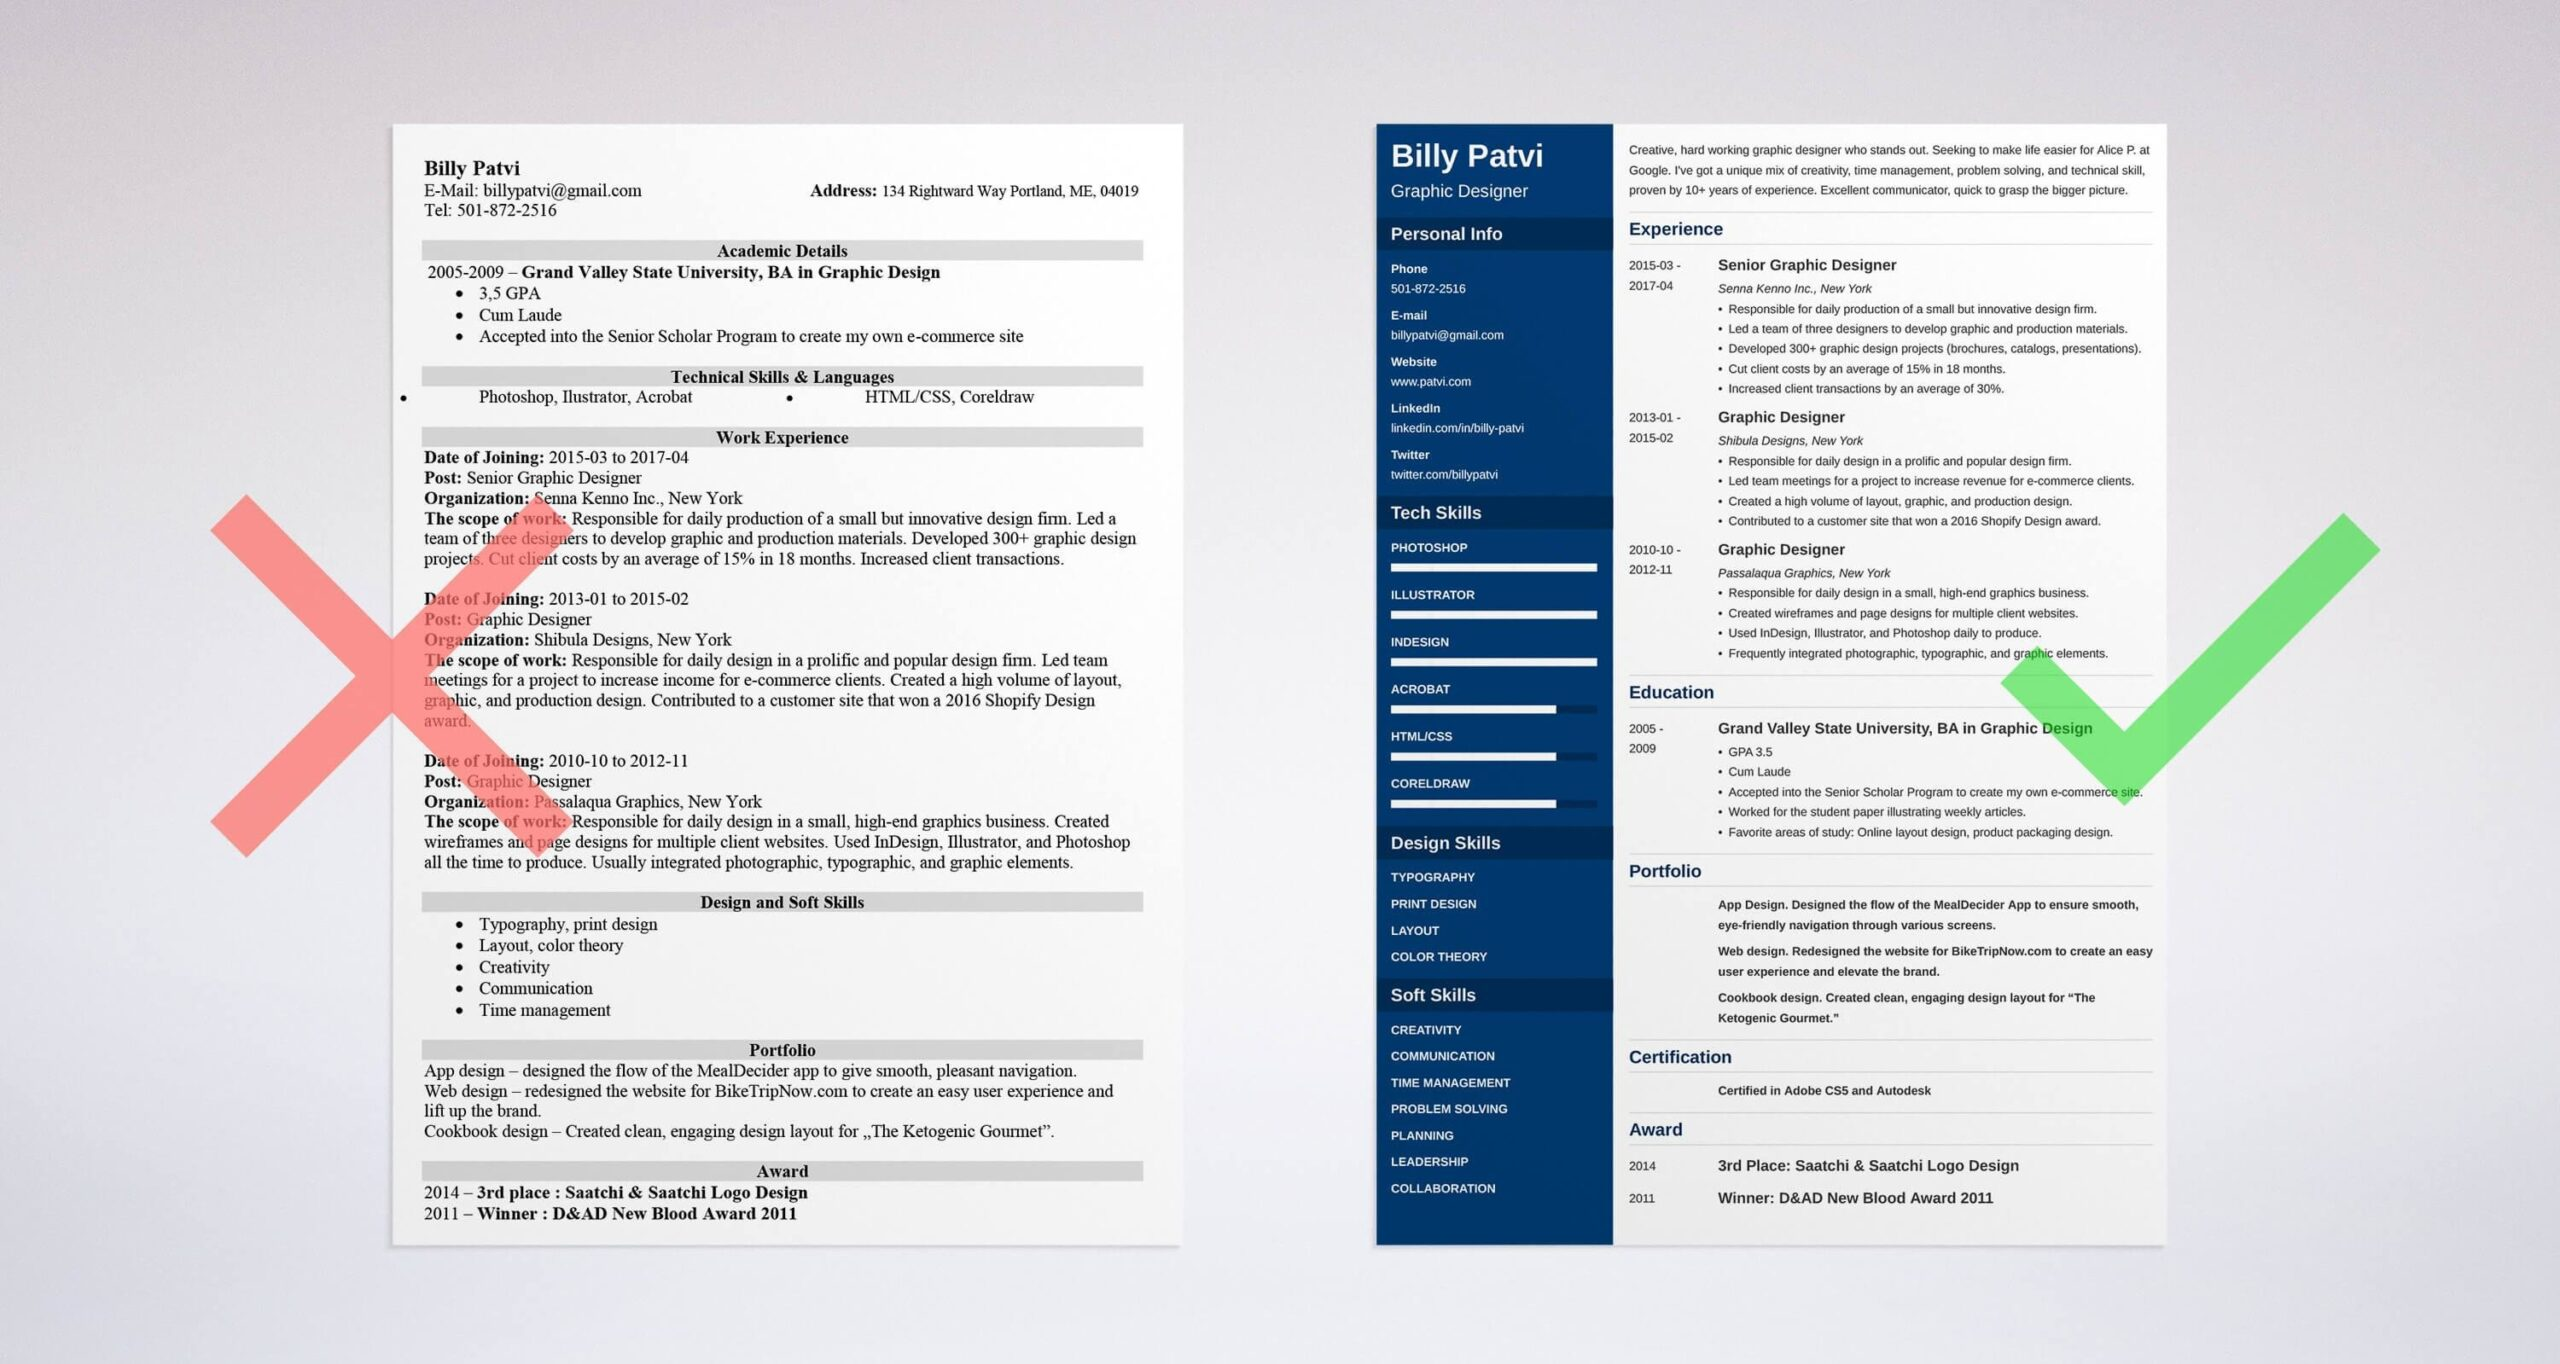 graphic designer resume examples and design tips for sample word format free samples Resume Graphic Designer Resume Sample Word Format Free Download